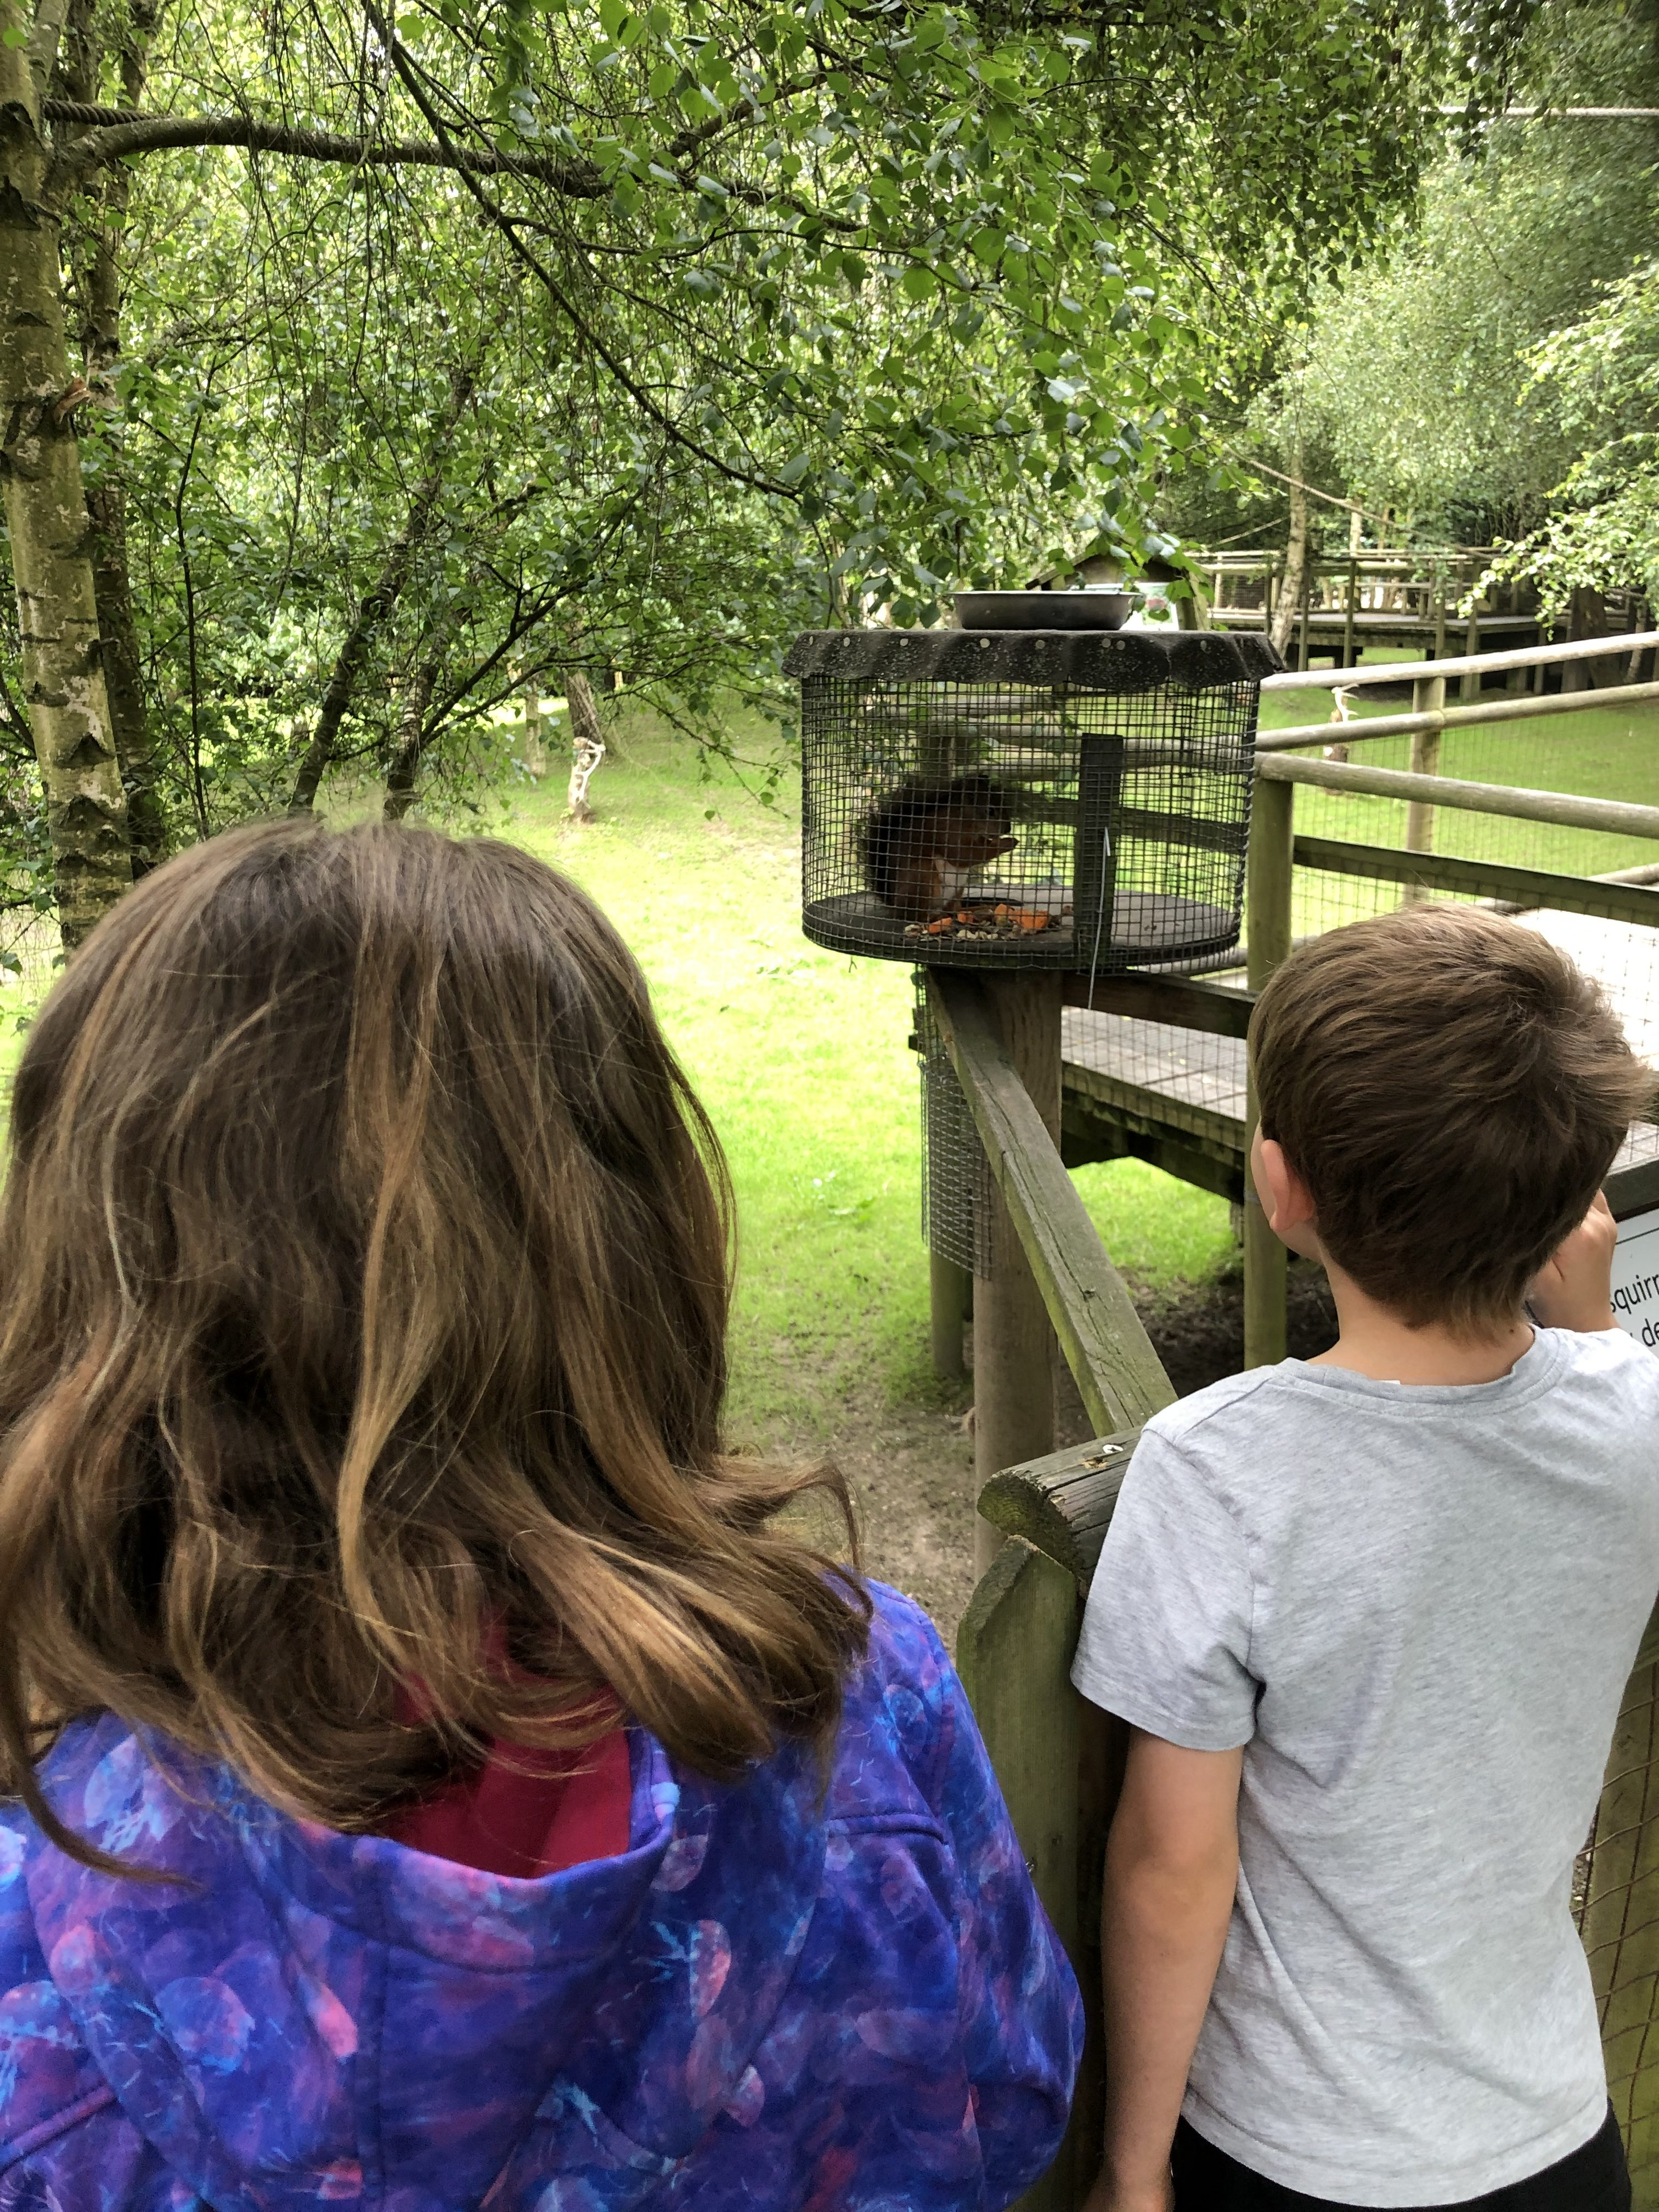 My two children at the British Wildlife Centre watching the red squirrels feeding on their special walk through enclosure.